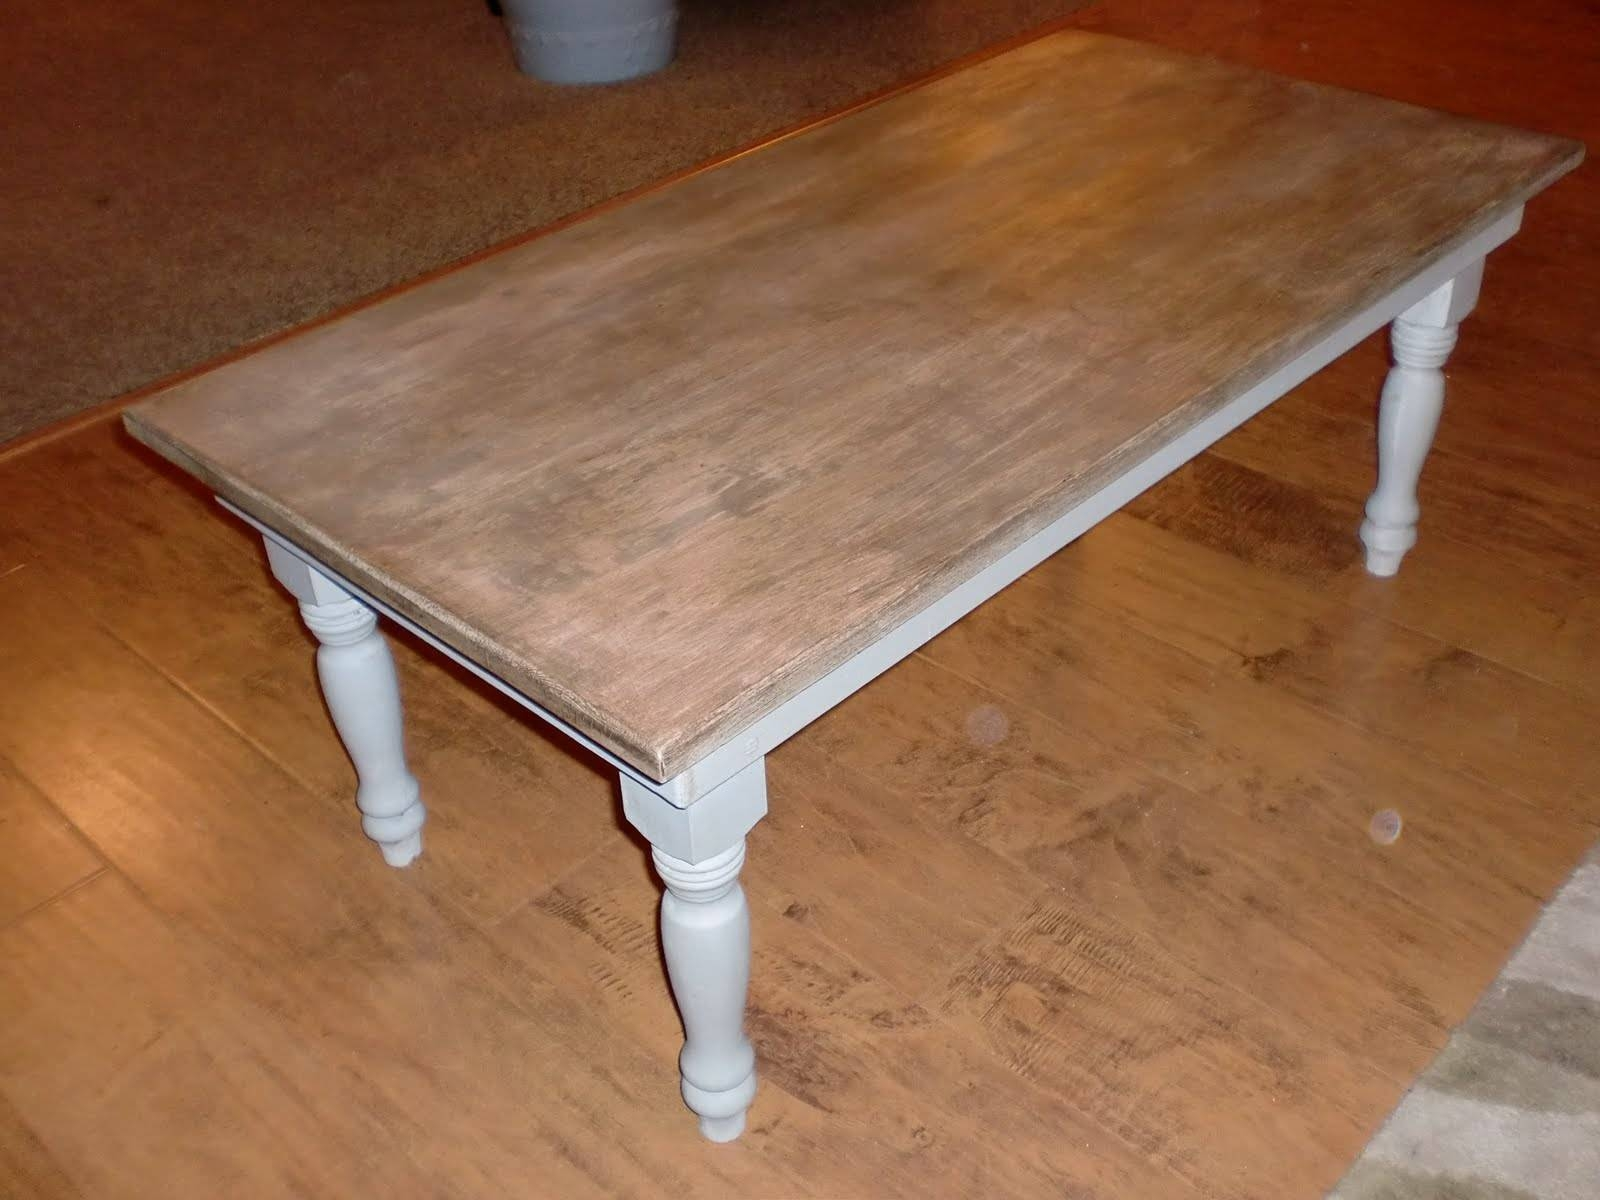 Embellish & Restore: Coffee Table Rehab pertaining to Grey Wash Coffee Tables (Image 18 of 30)